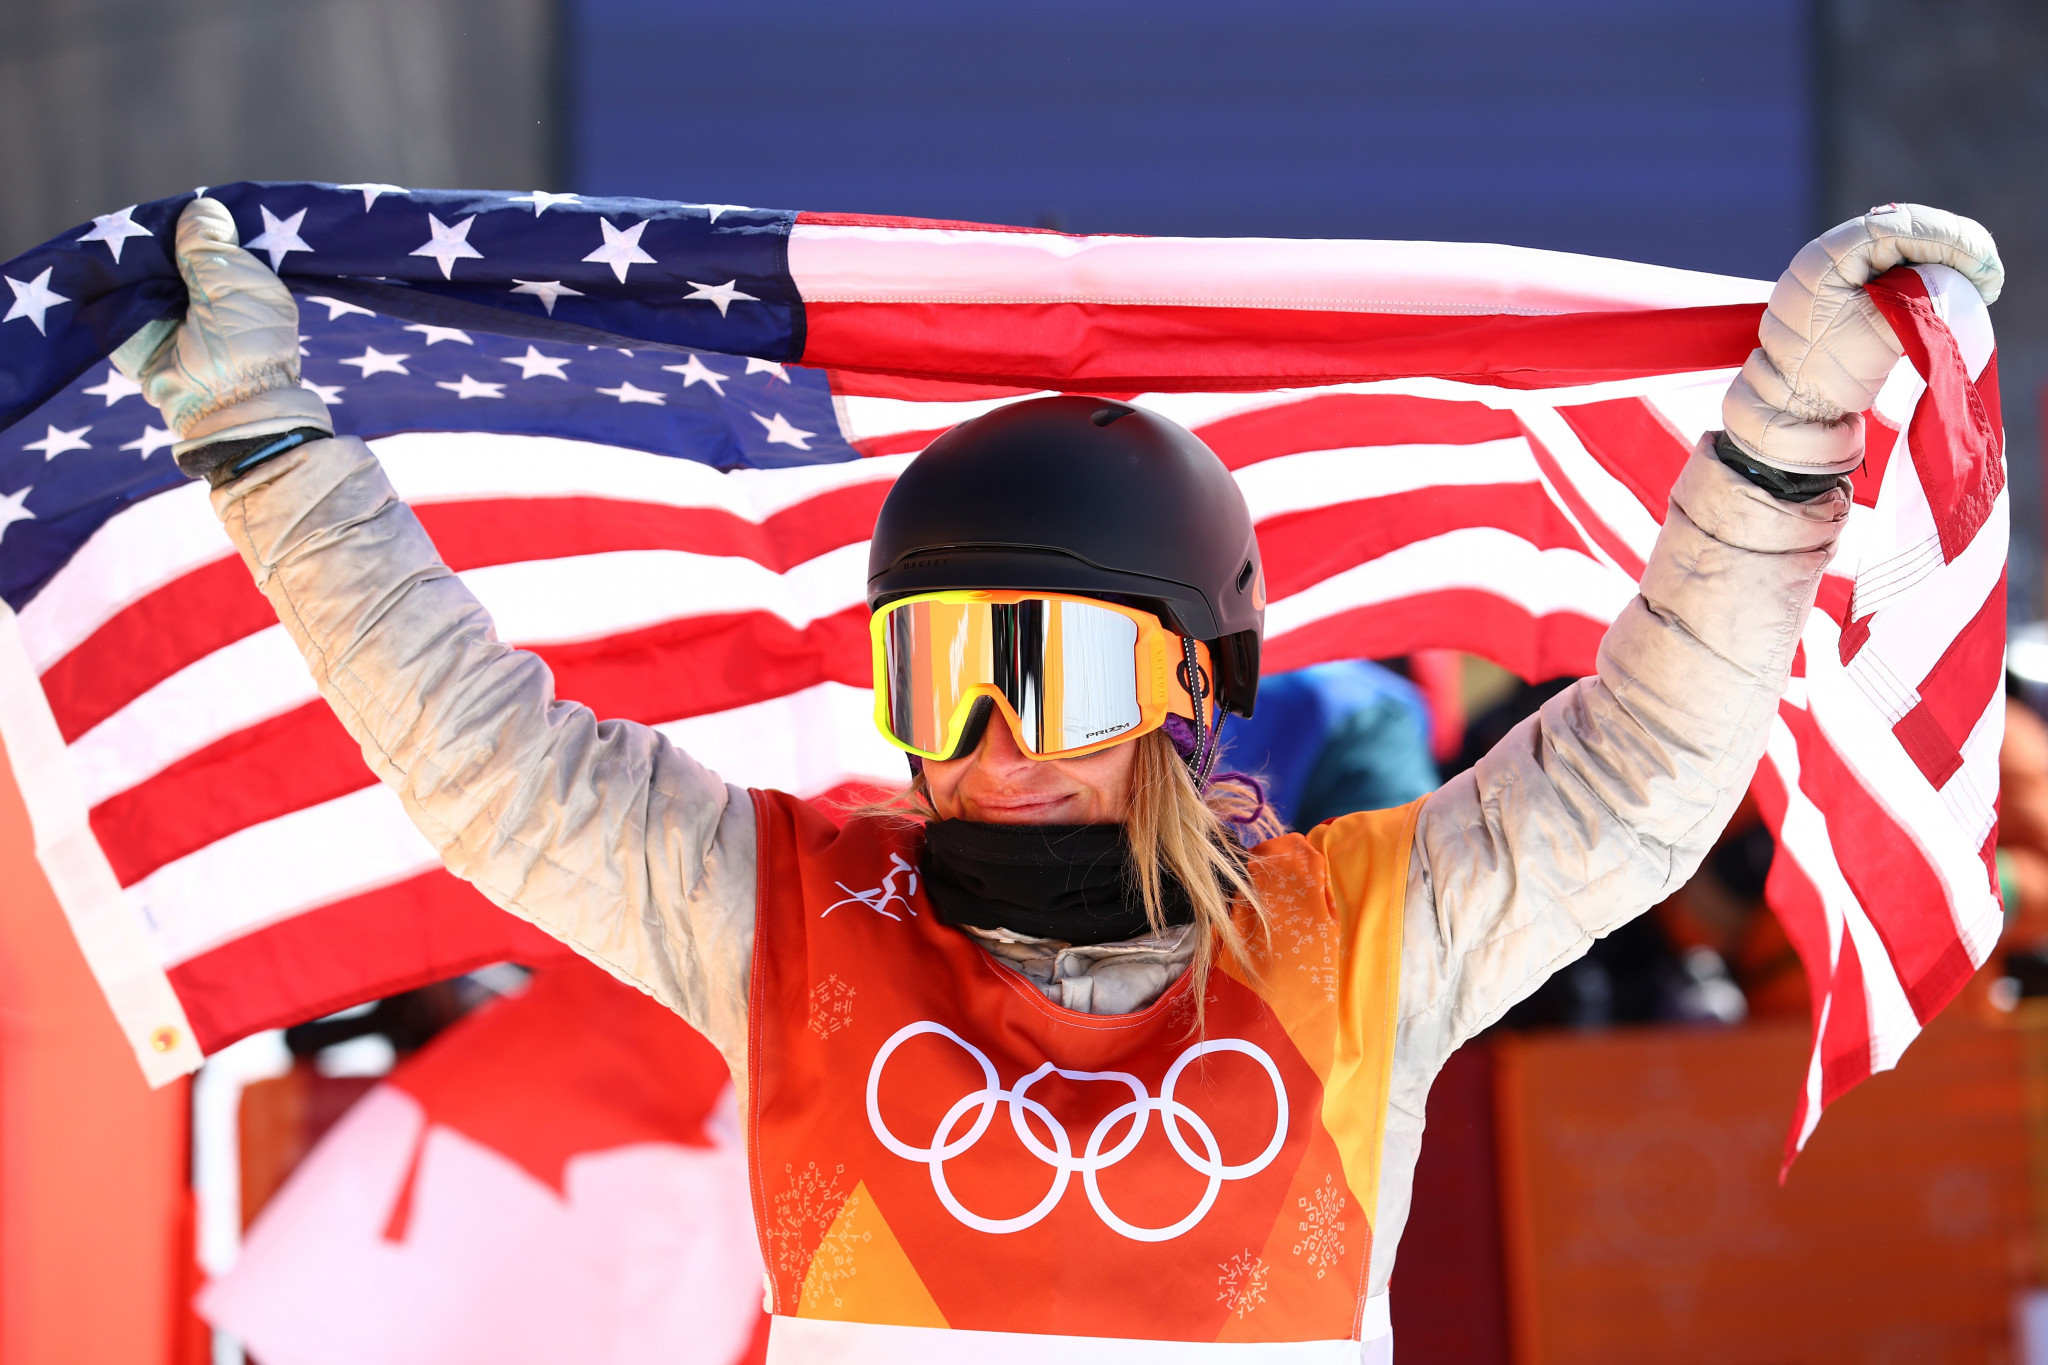 The United States' Jamie Anderson retained her Olympic women's slopestyle snowboarding title amid difficult conditions at Pyeongchang 2018 today ©Getty Images